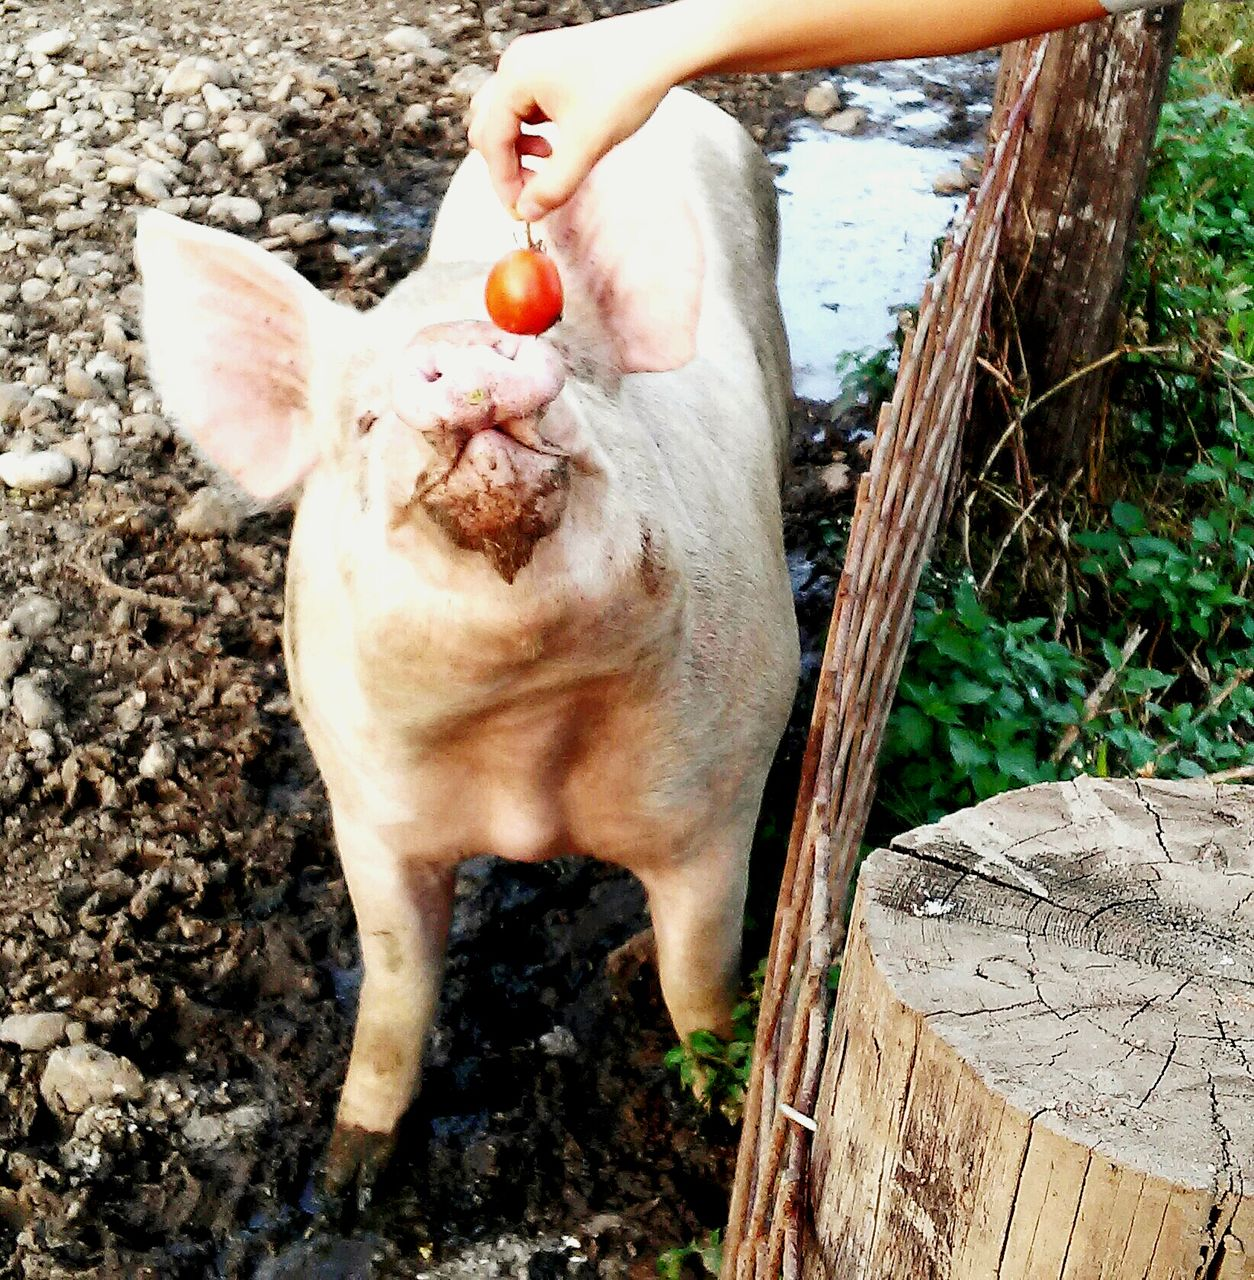 Cropped Hand Feeding Tomato To Pig On Field